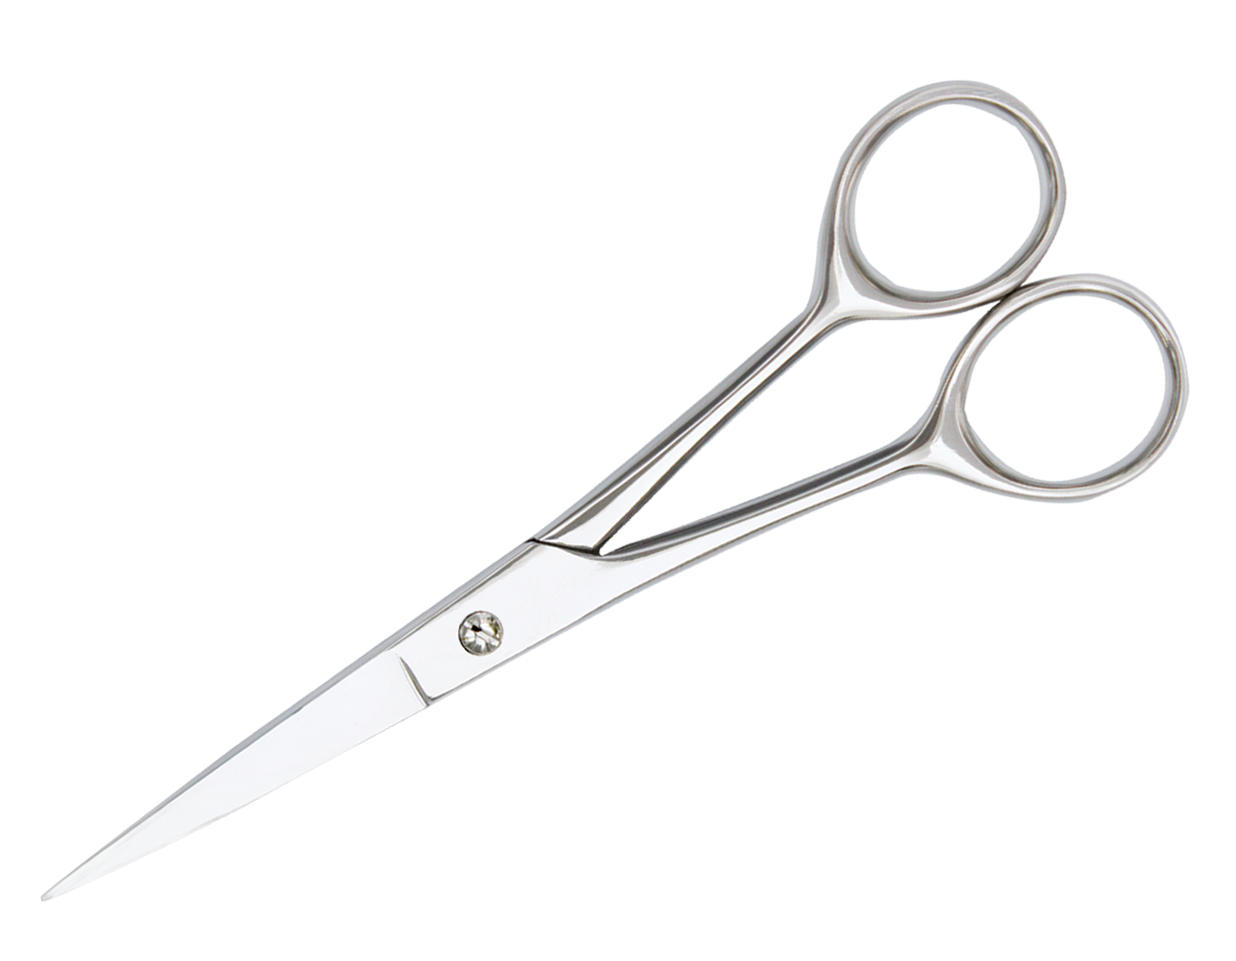 PNG Hairdressing Scissors - 50208